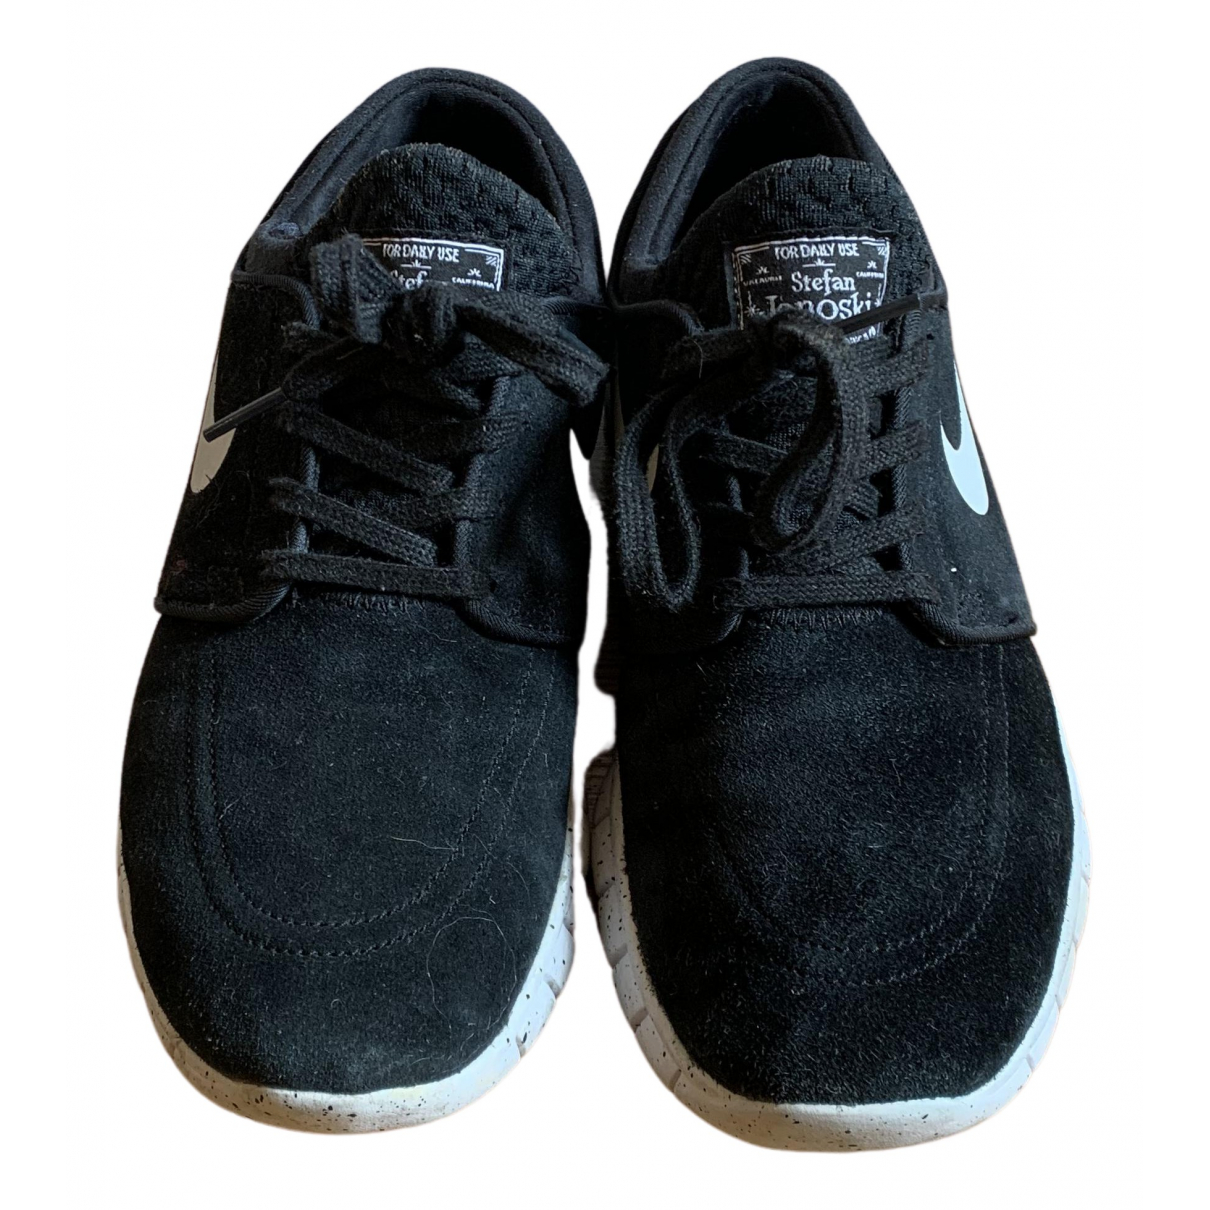 Nike Air Max  Black Leather Trainers for Men 40 EU